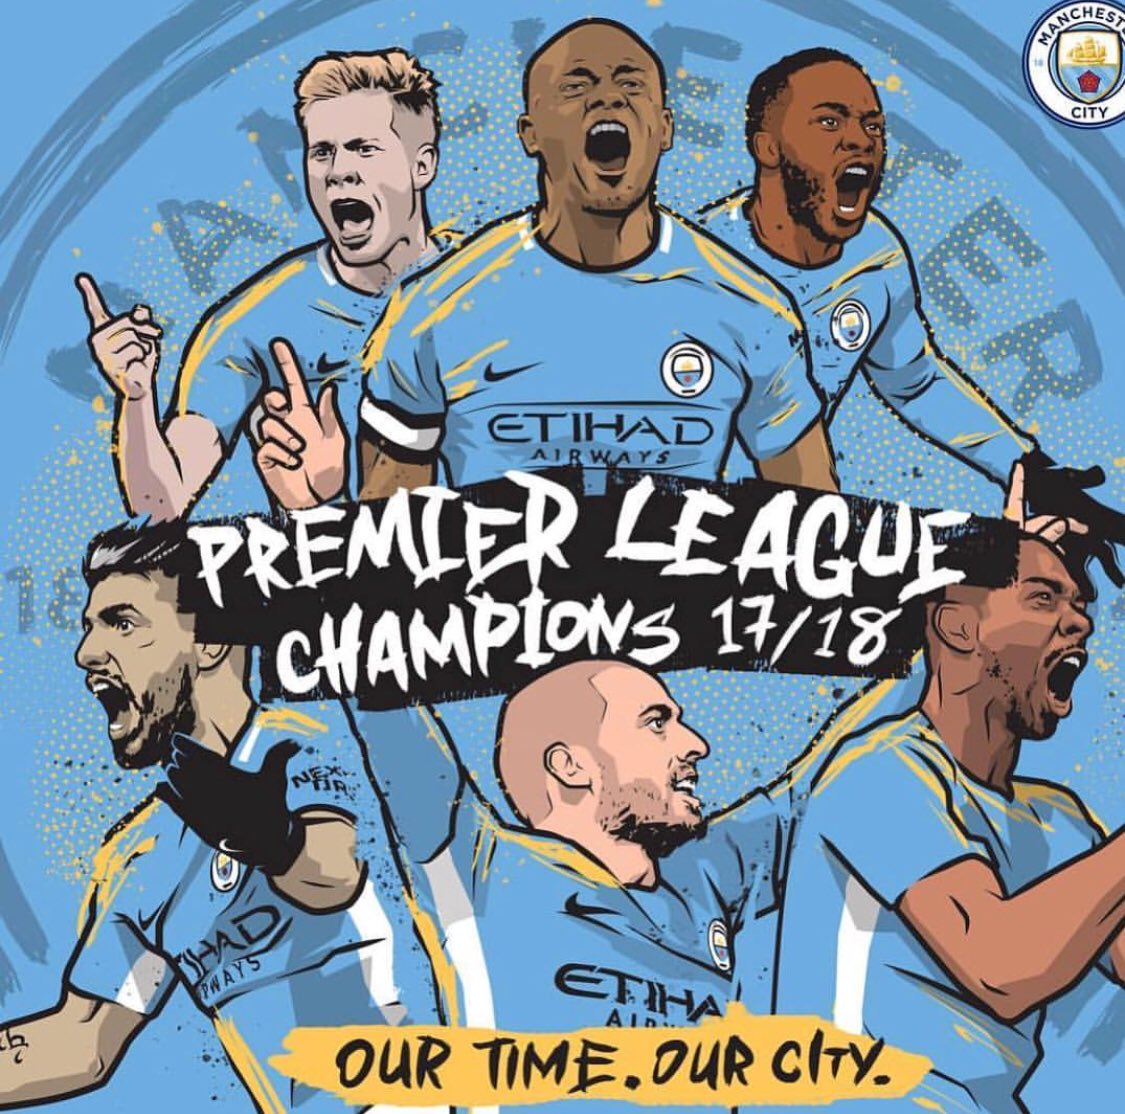 Unbelievable season for us. Very happy to call us champions this year https://t.co/Ulvw5zQyaa